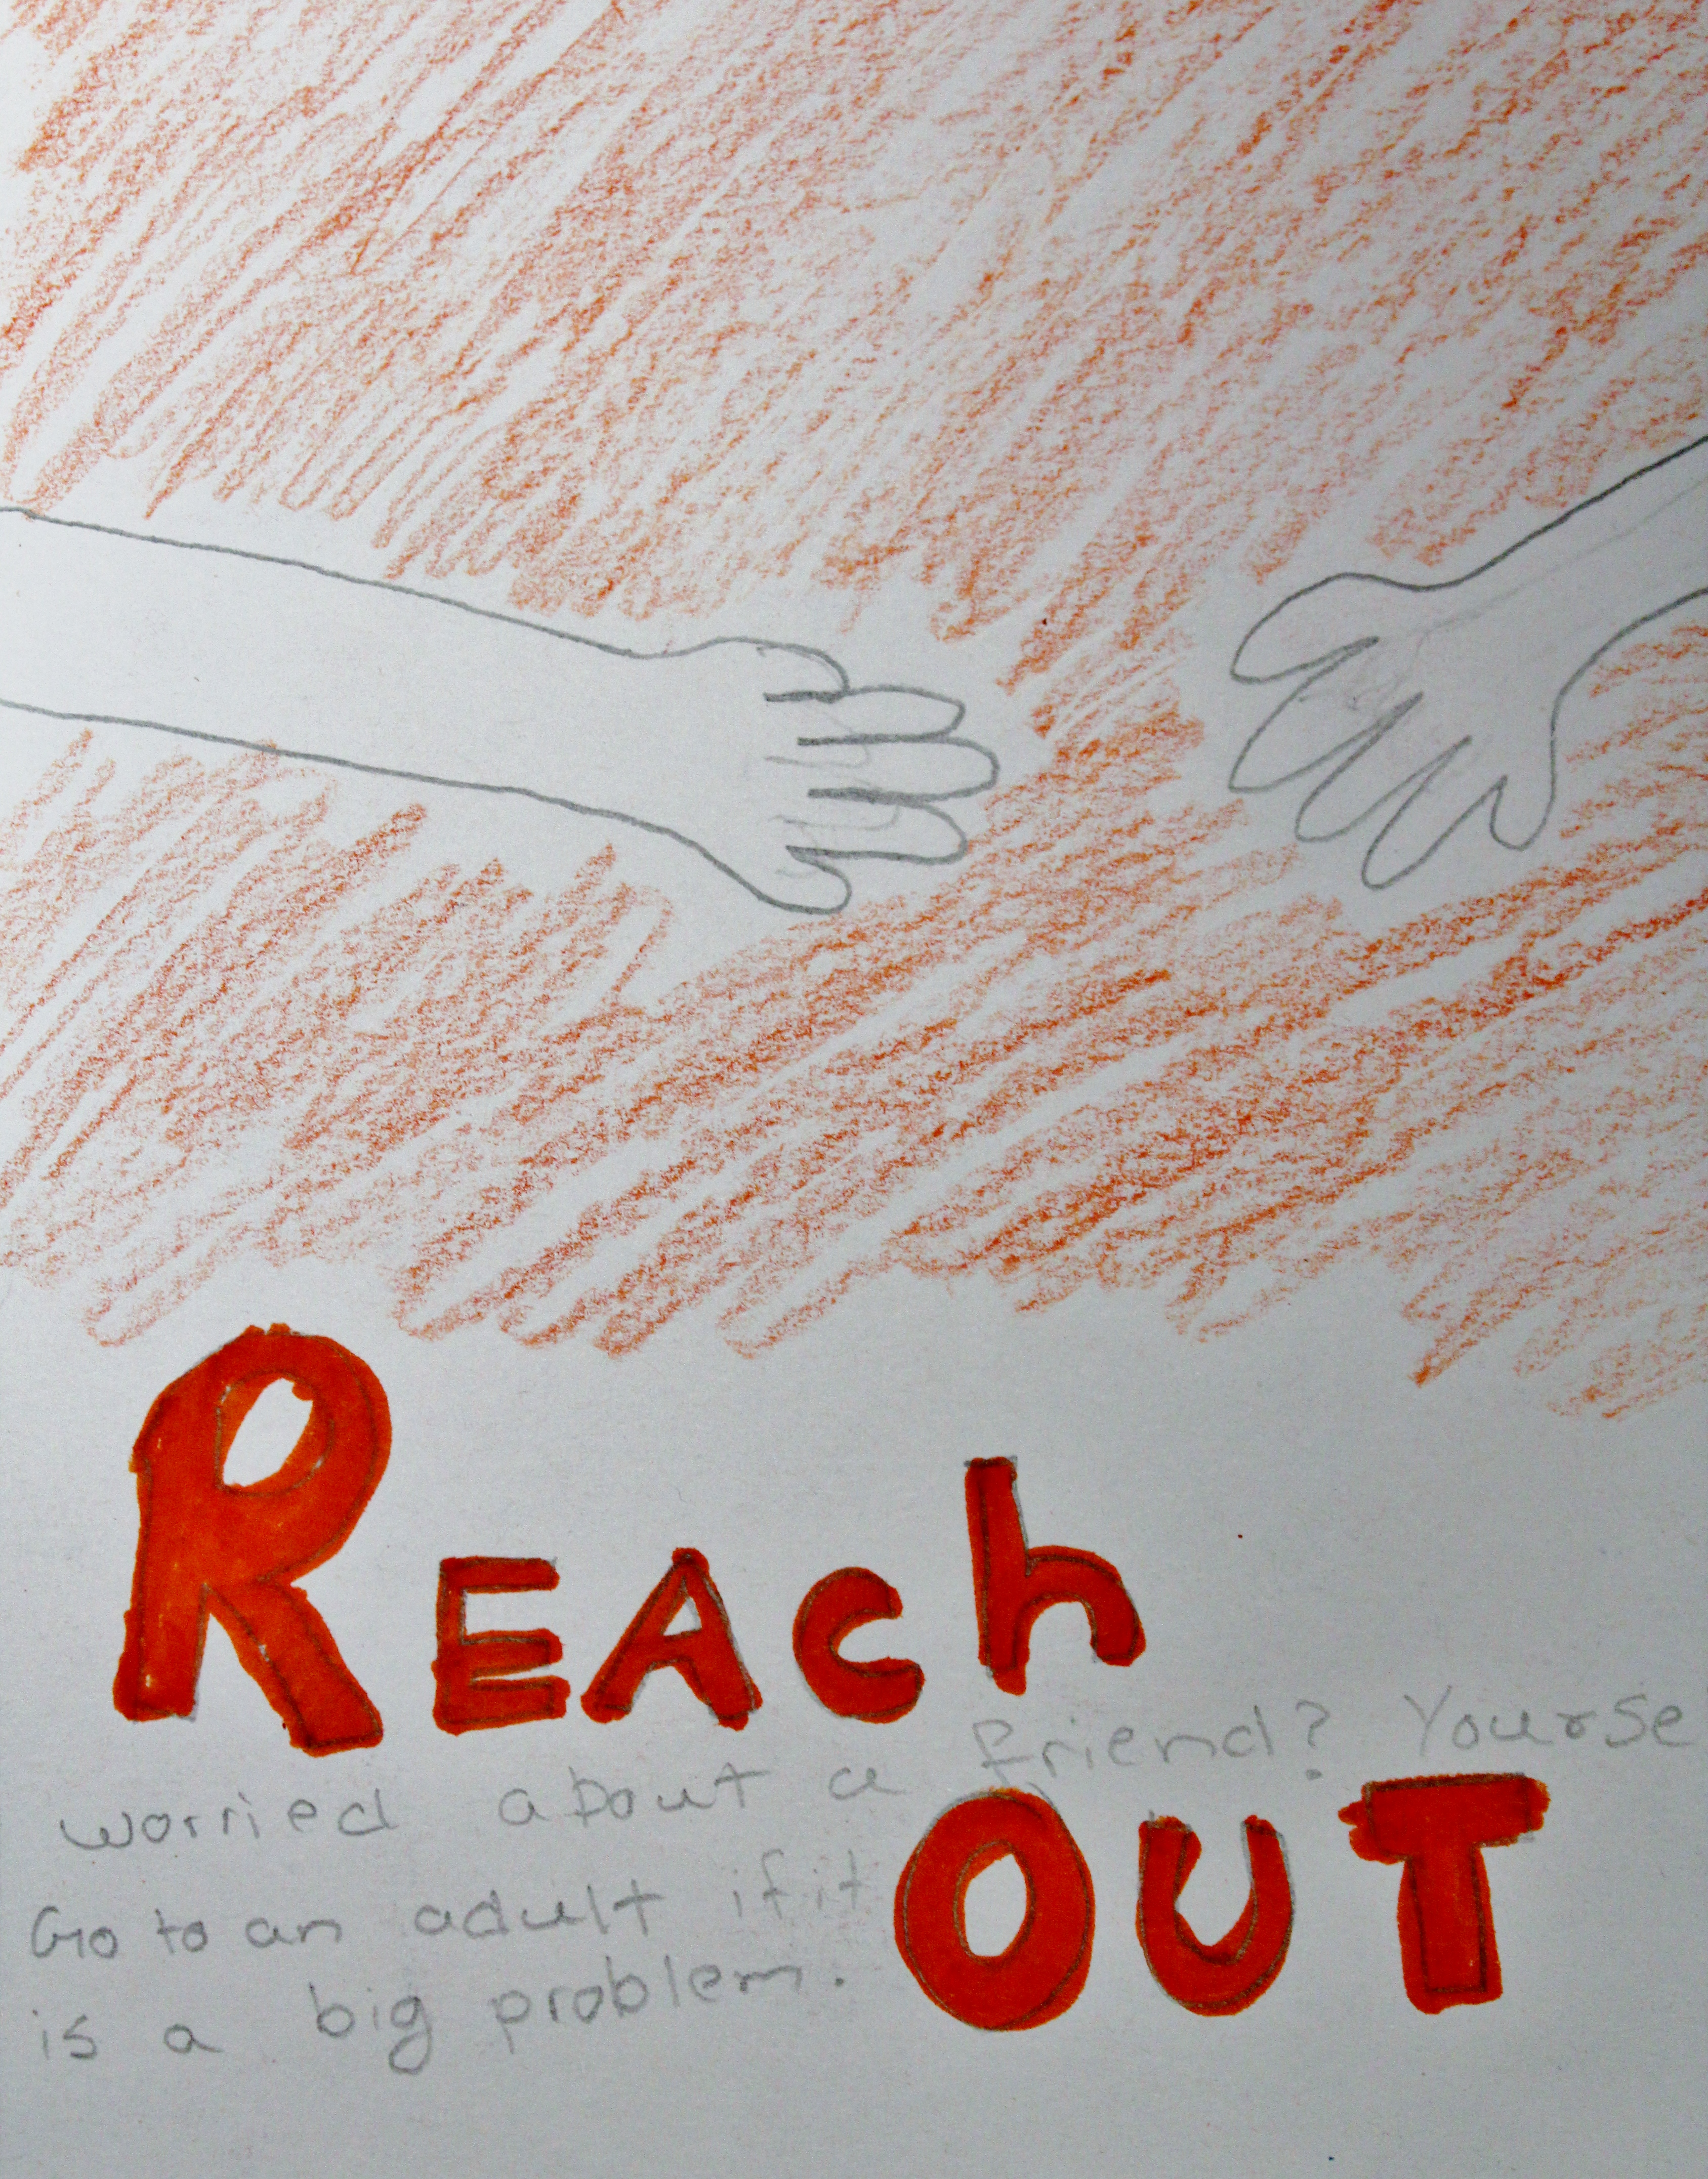 Elementary students expressed their Be Well thoughts through art